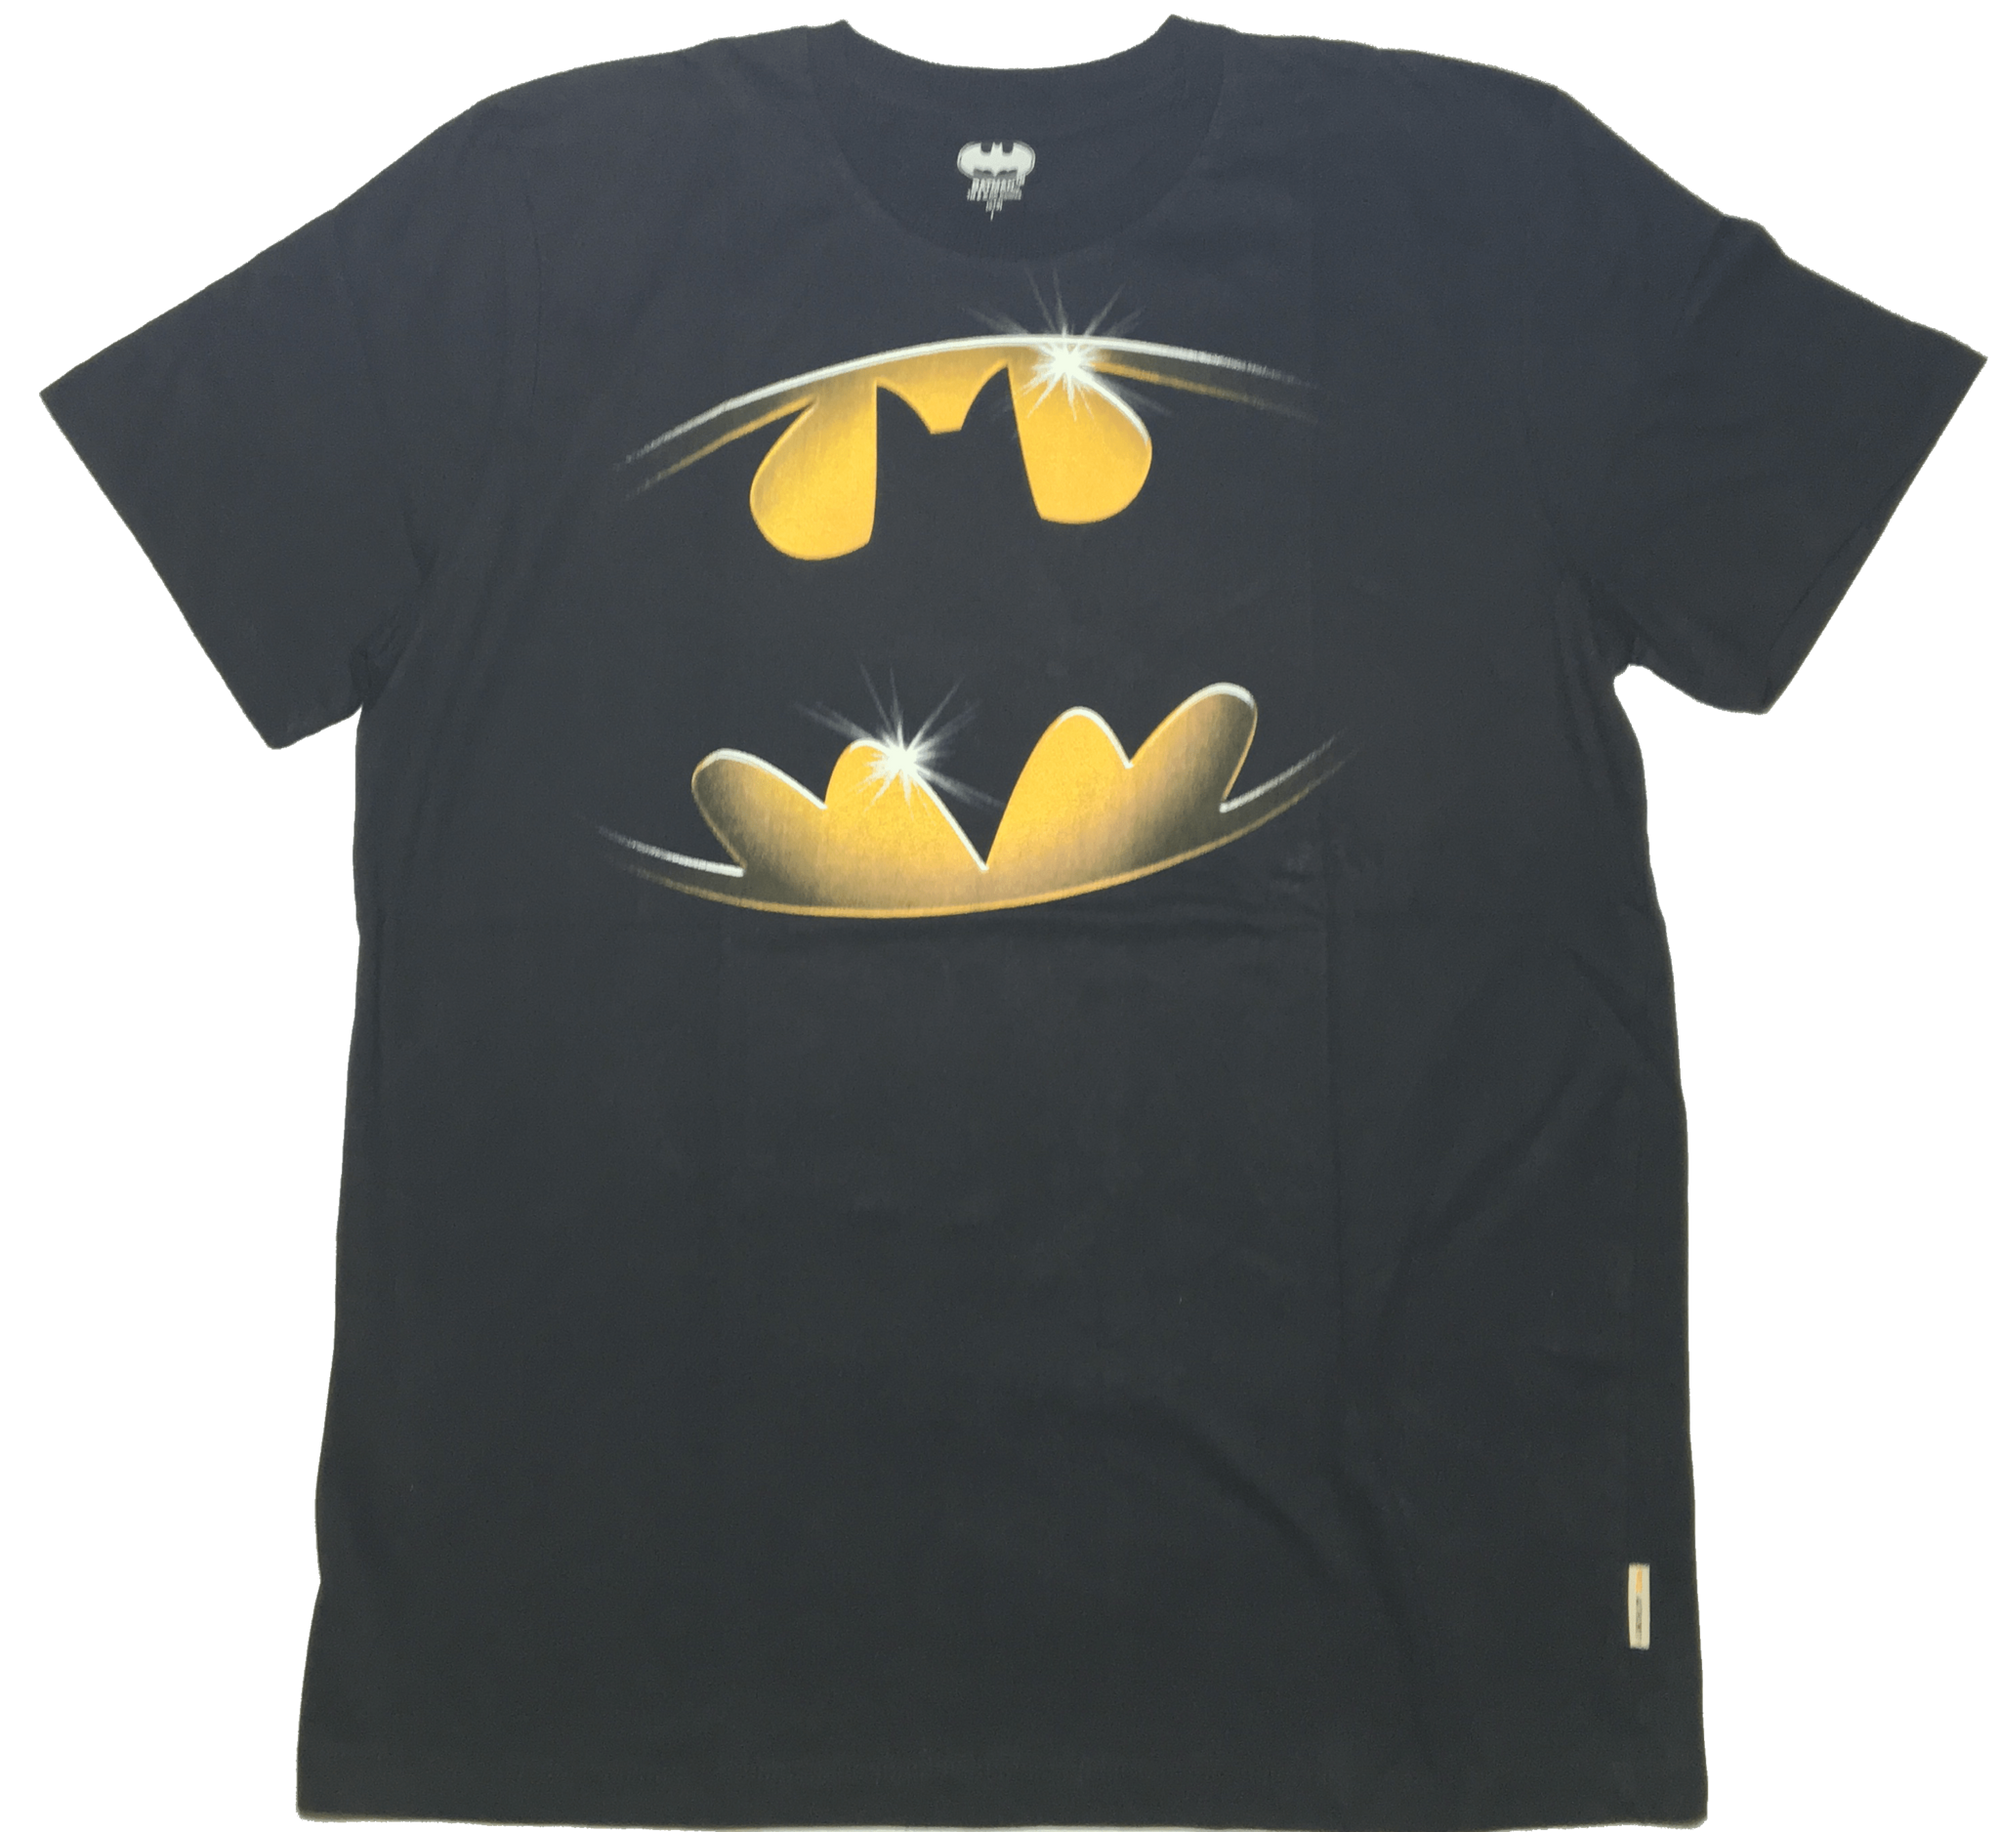 Batman Logo T-Shirt by Bio World-Bio World- www.superherotoystore.com-T-Shirt